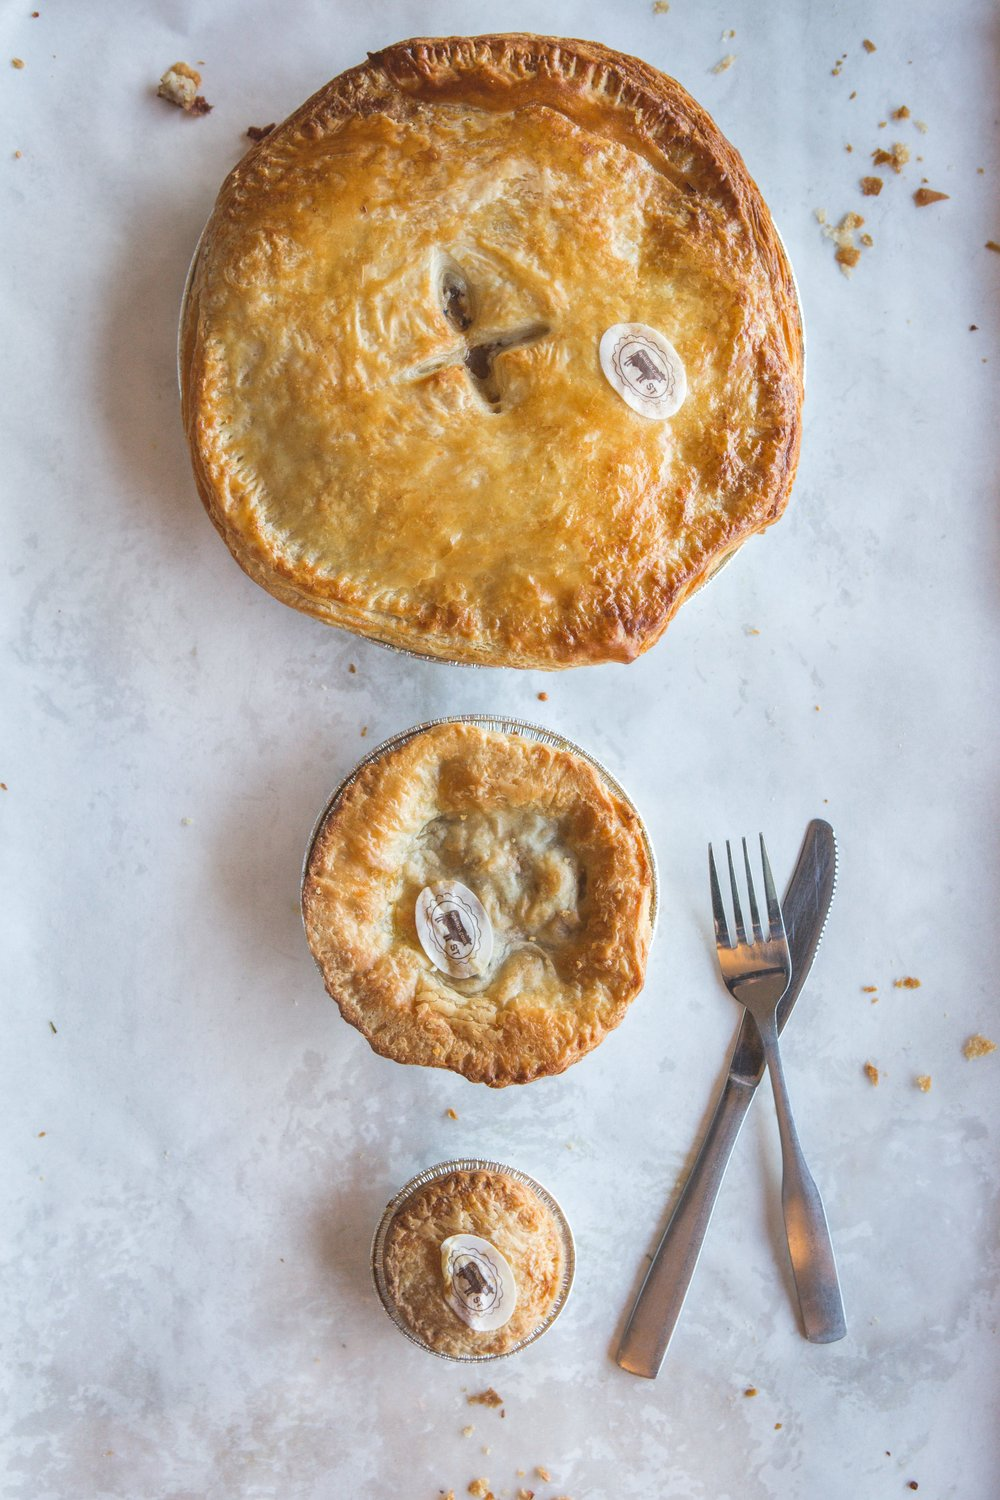 "All pies in 3 sizes  Family 9 "" - feeds 6-8  Personal 5"" - Just for you  Slider 3"" - Snack size"